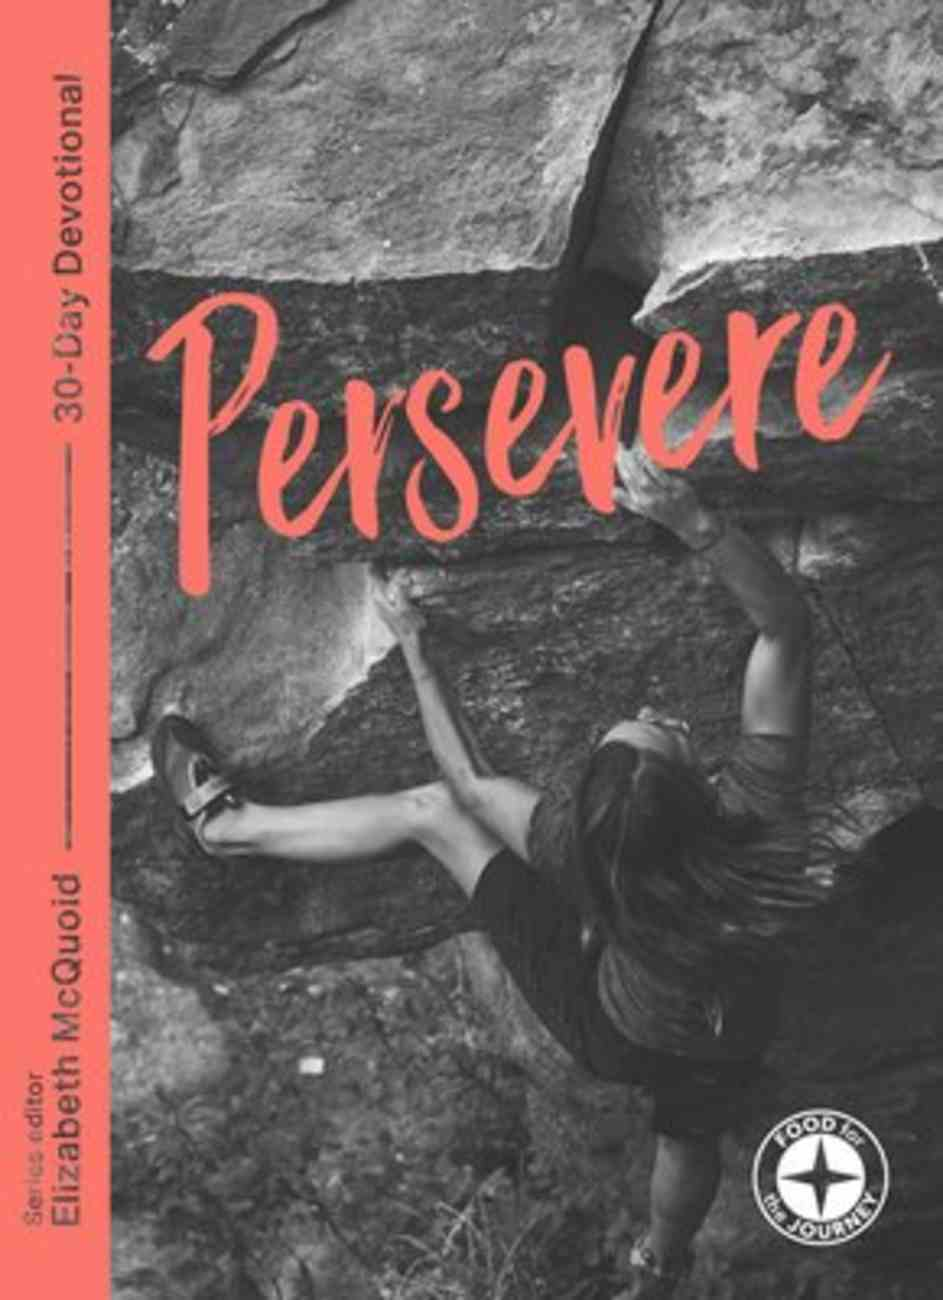 Persevere (Food For The Journey Series) Paperback